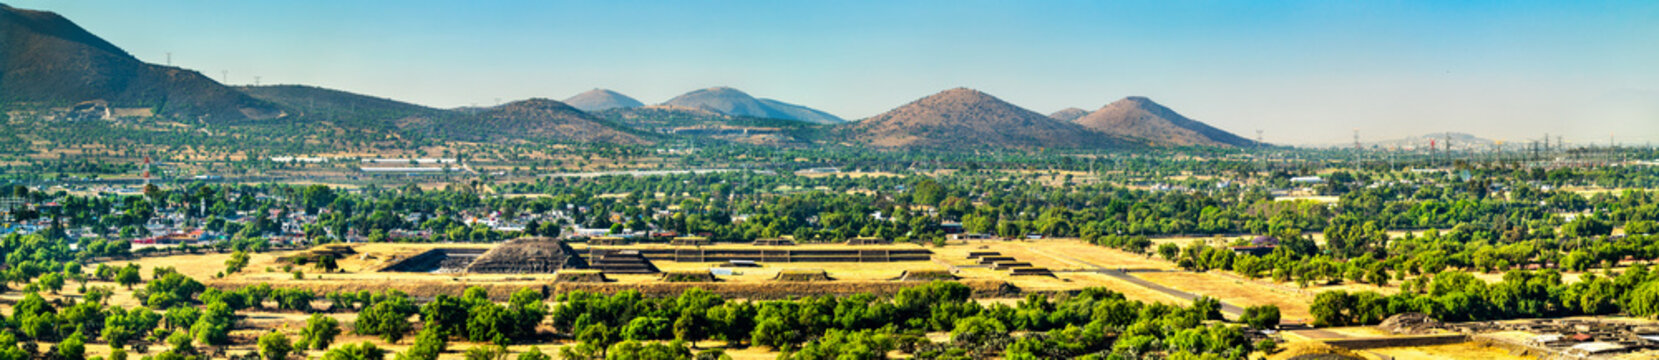 View of Teotihuacan in Mexico